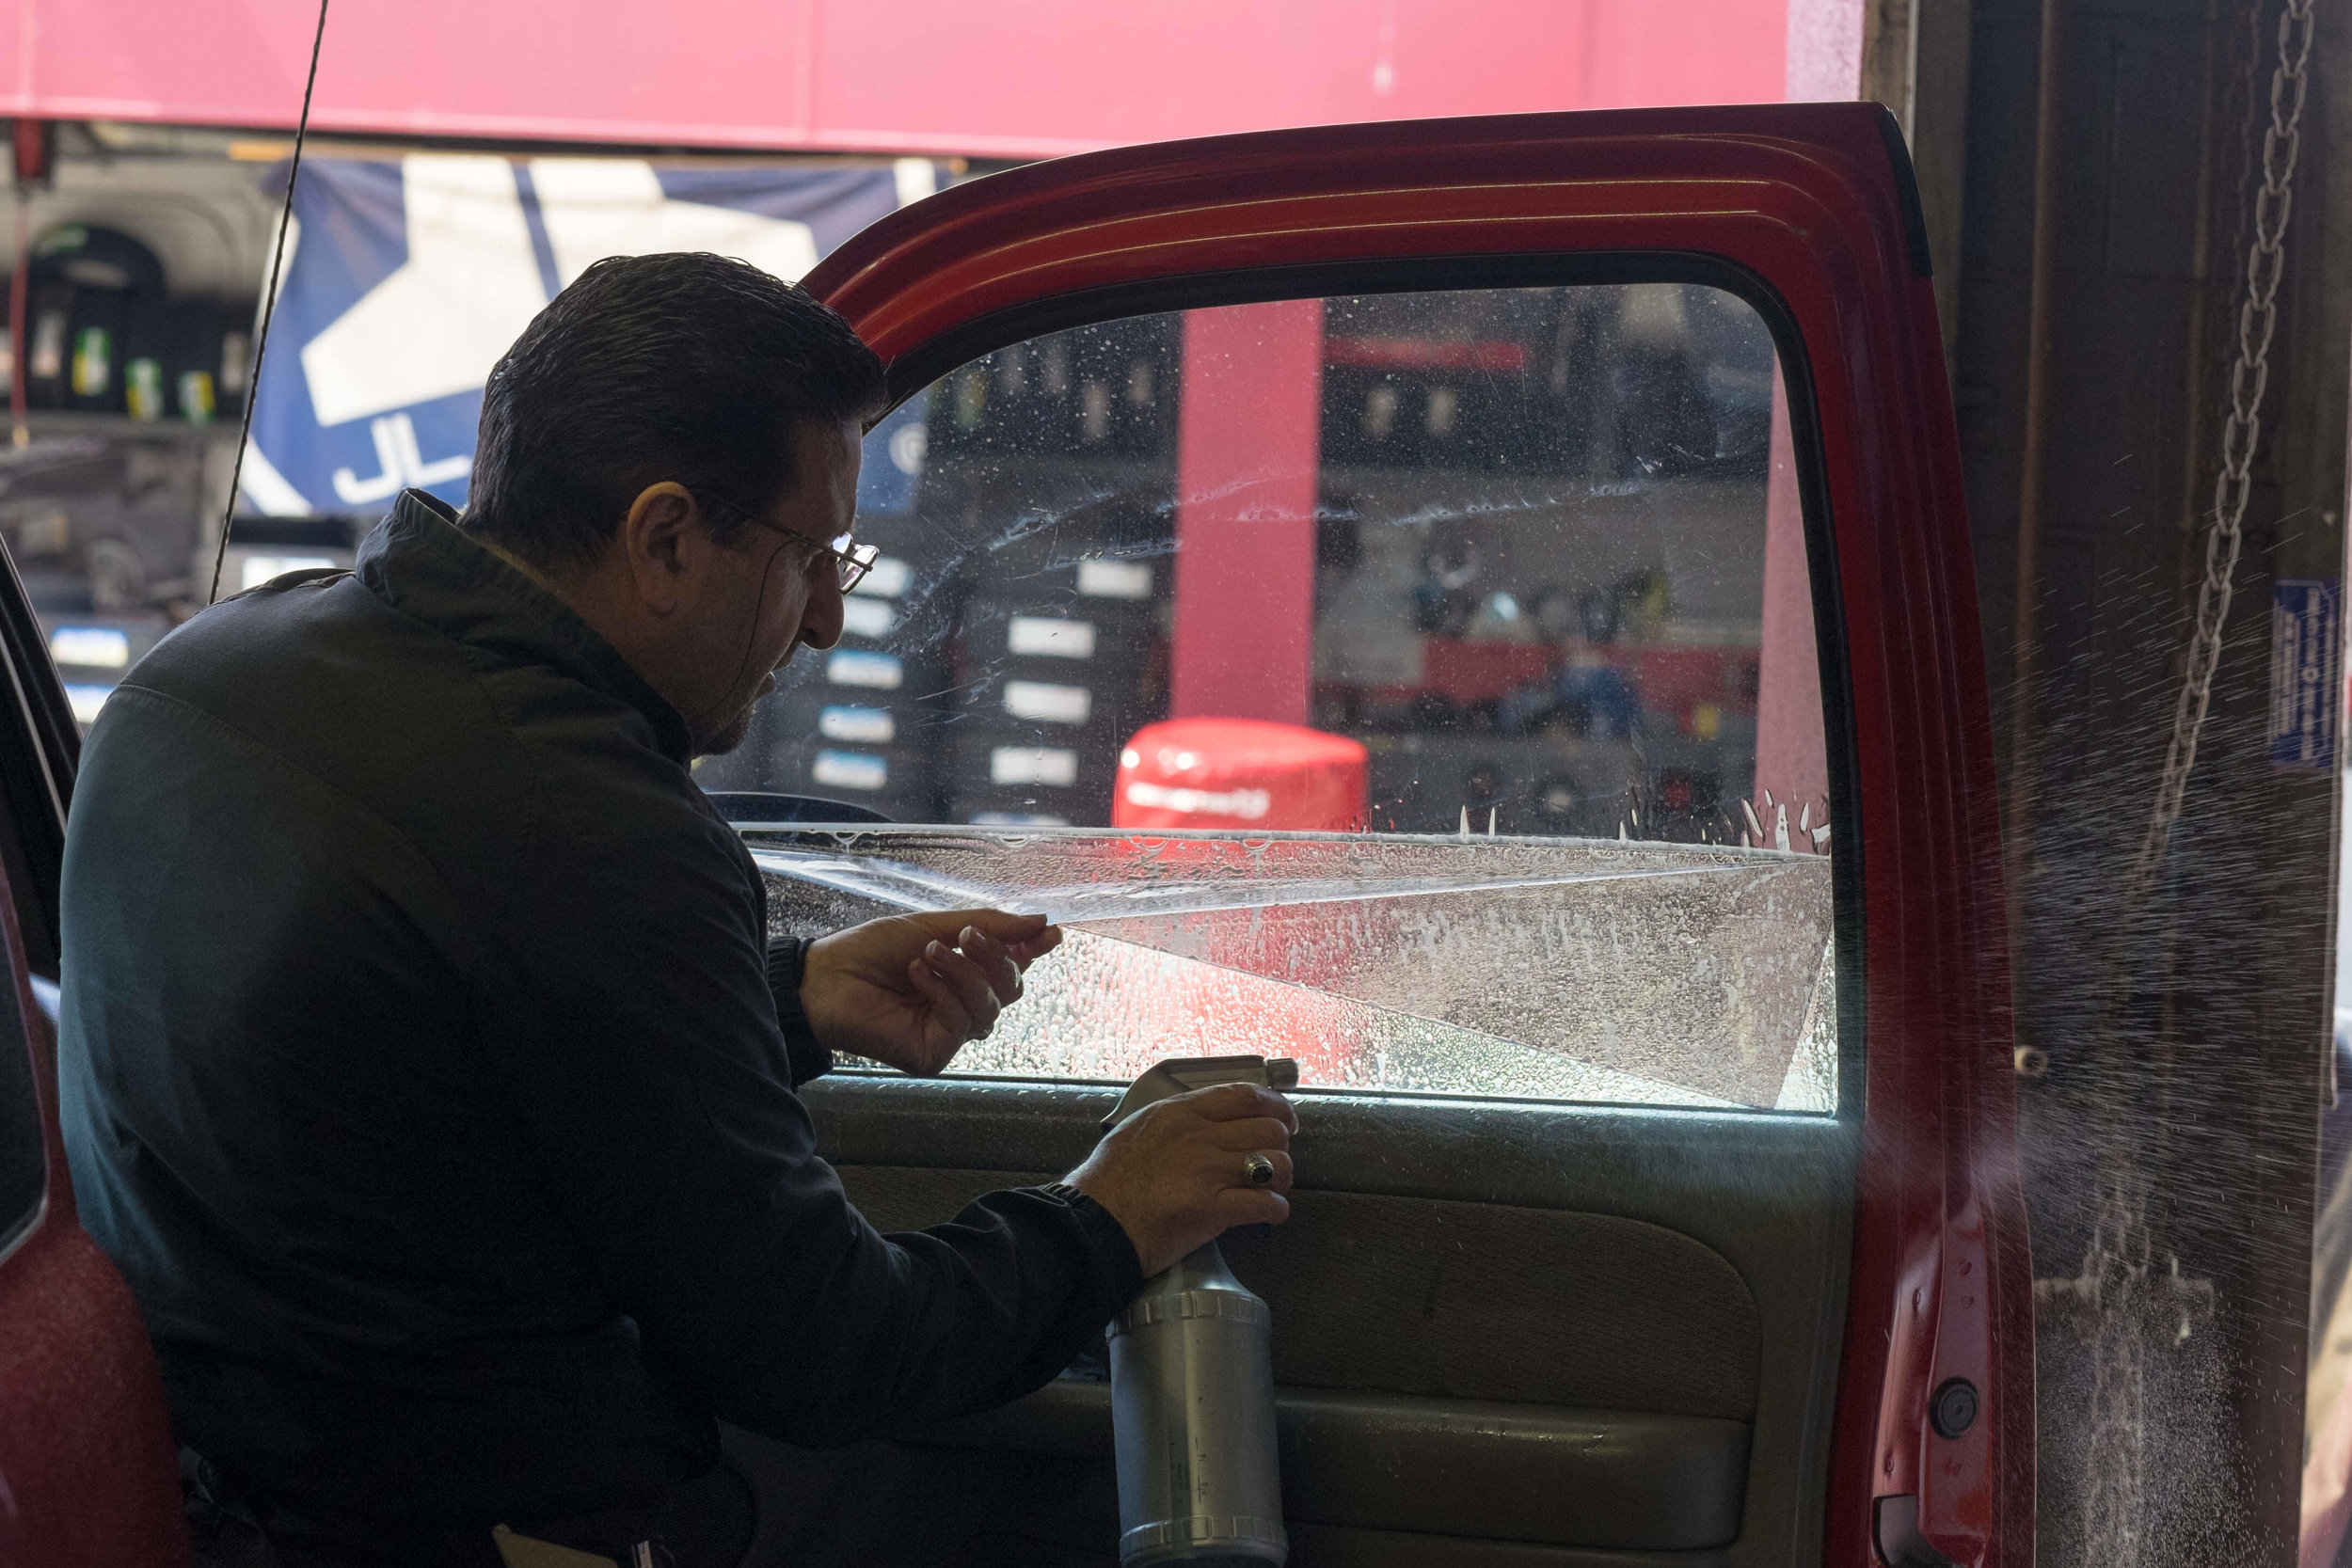 Get great window tinting at Audiosport Escondido